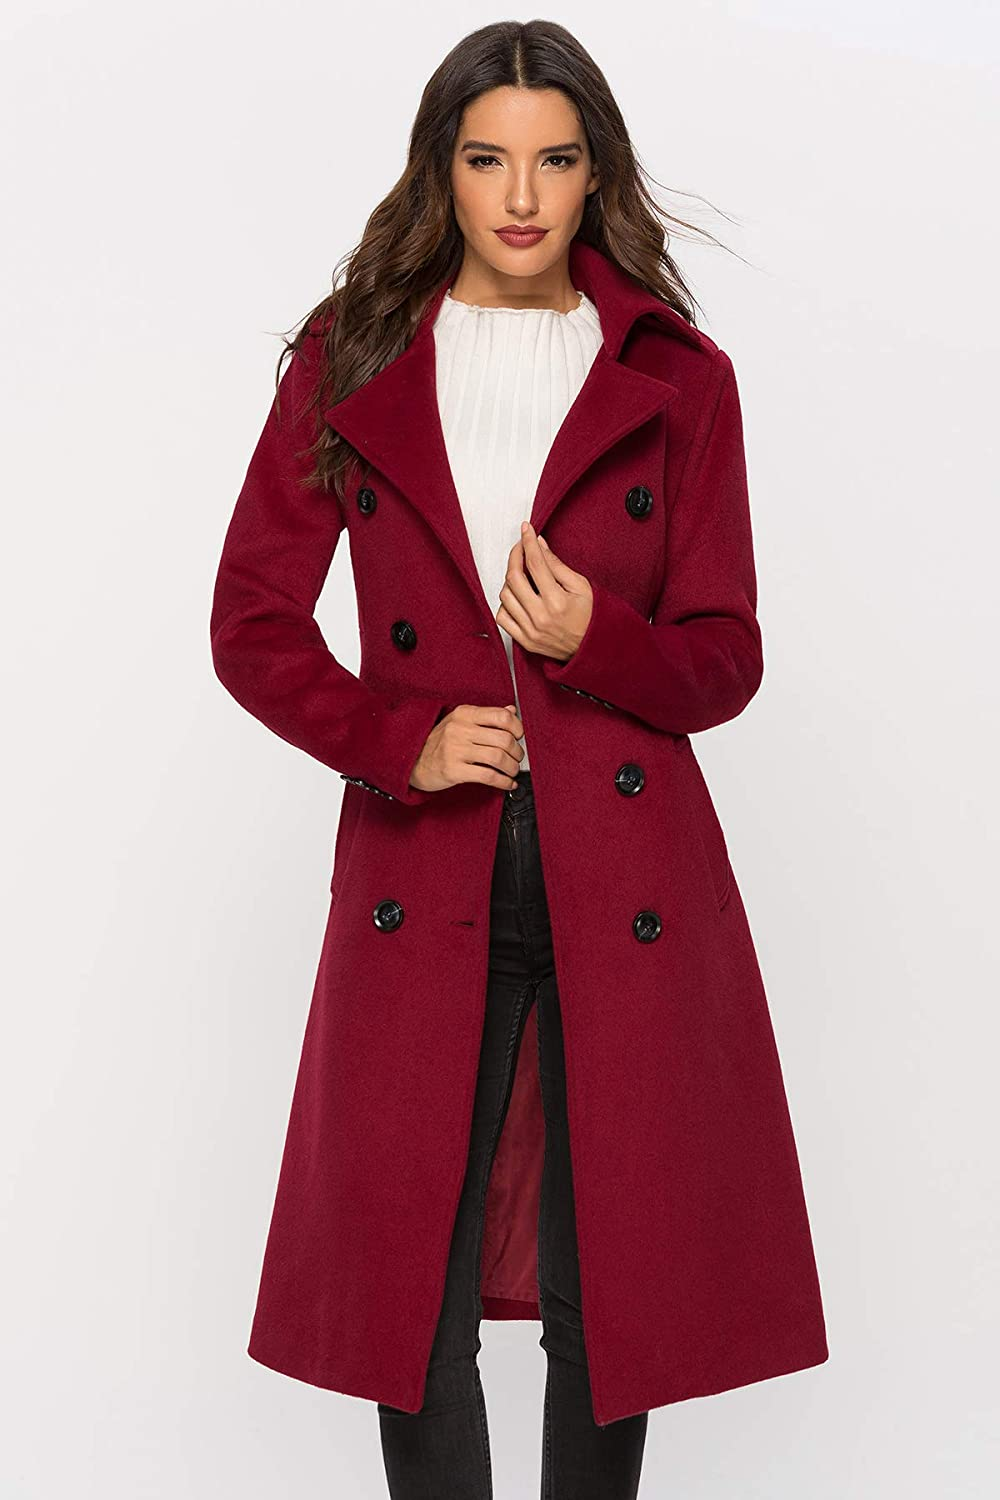 Escalier Womens Wool Coat Double Breasted Winter Long Trench Coat with Belt